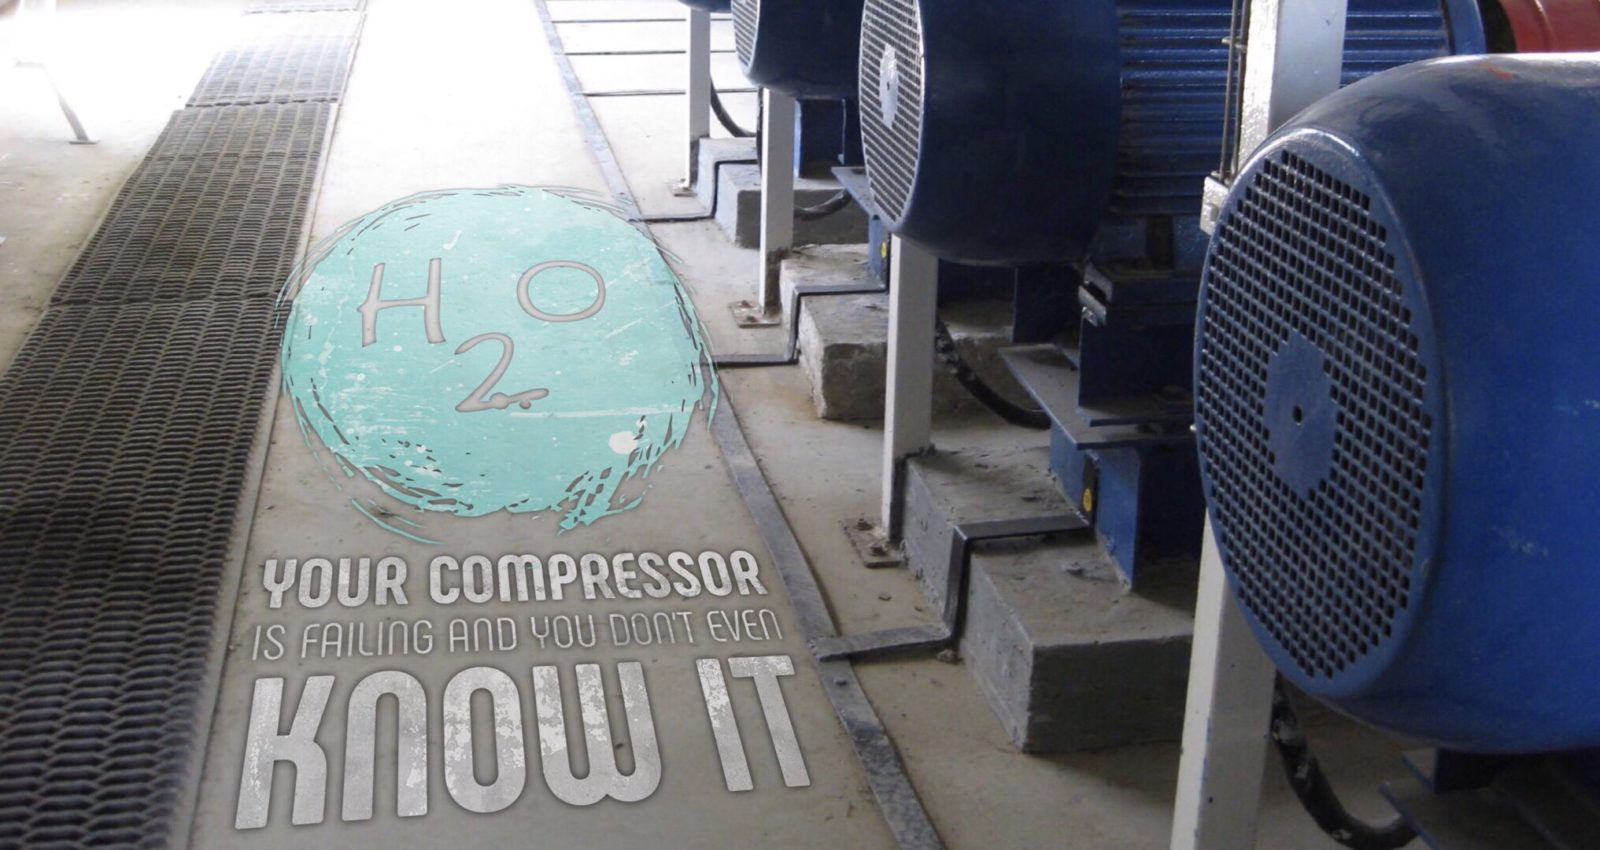 Your compressor is failing and you don't even know it